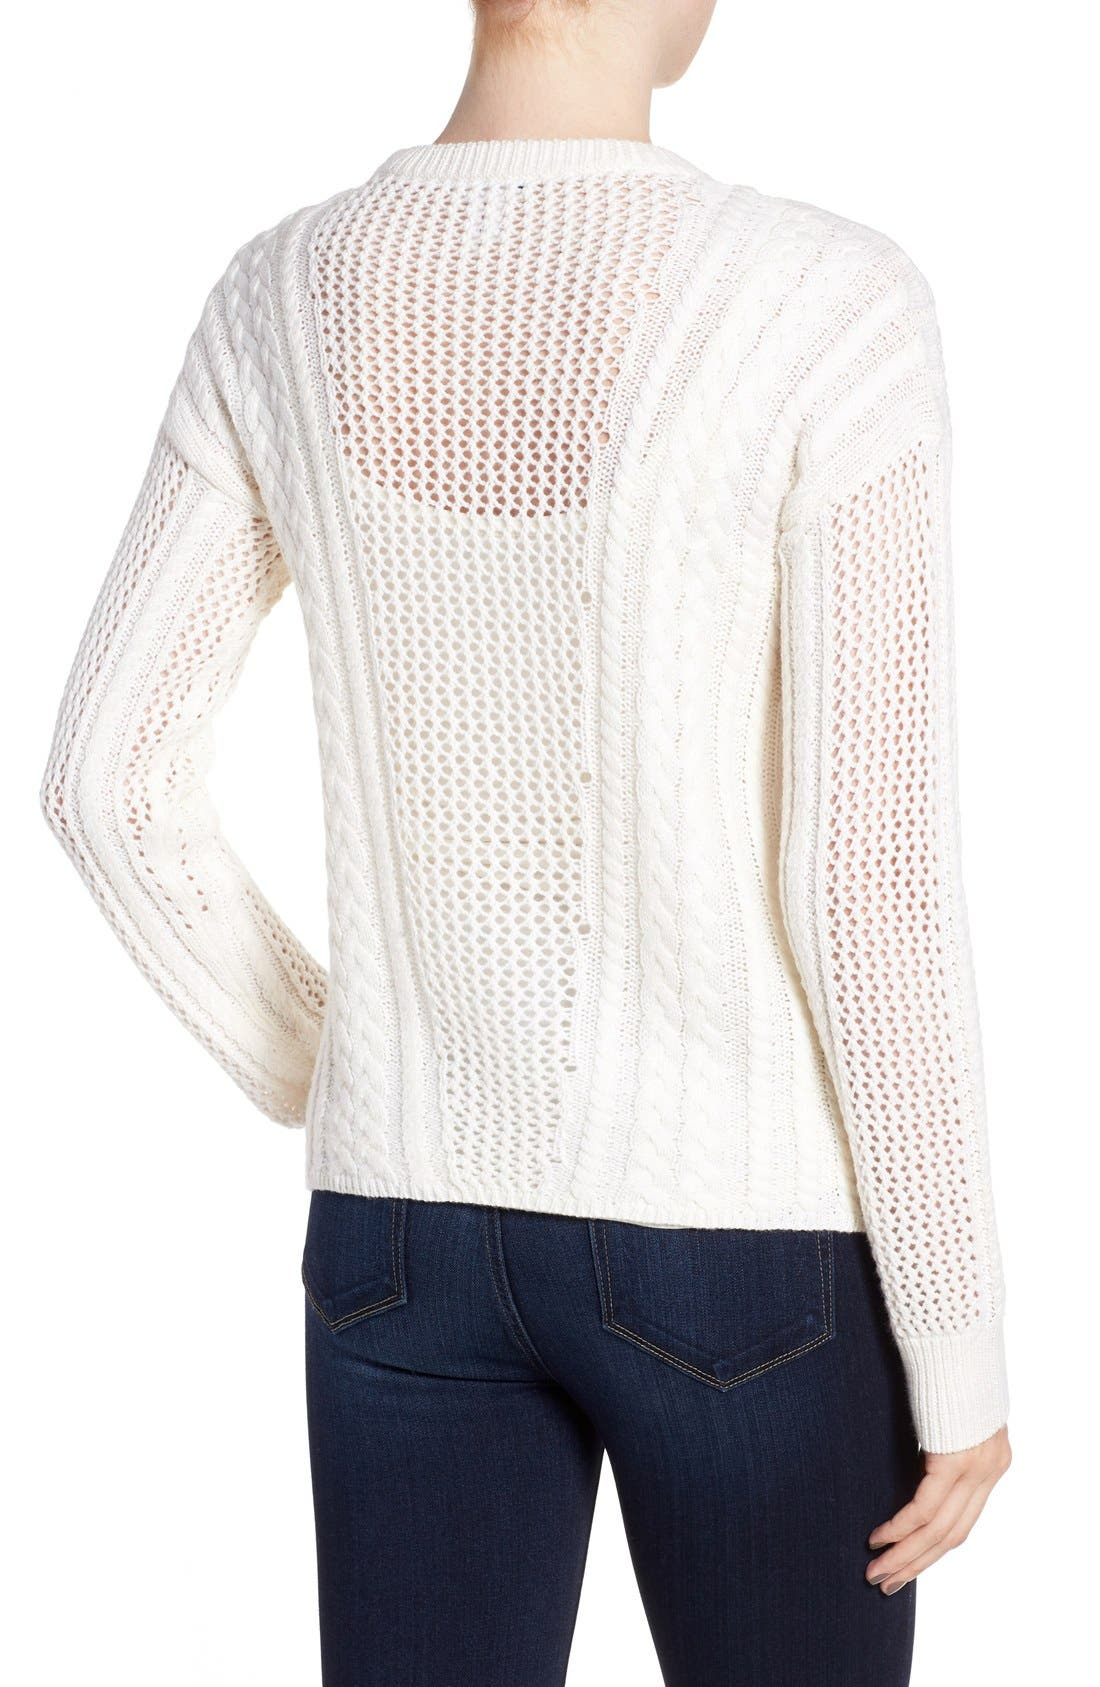 Amory Open Knit Sweater,                             Alternate thumbnail 2, color,                             901